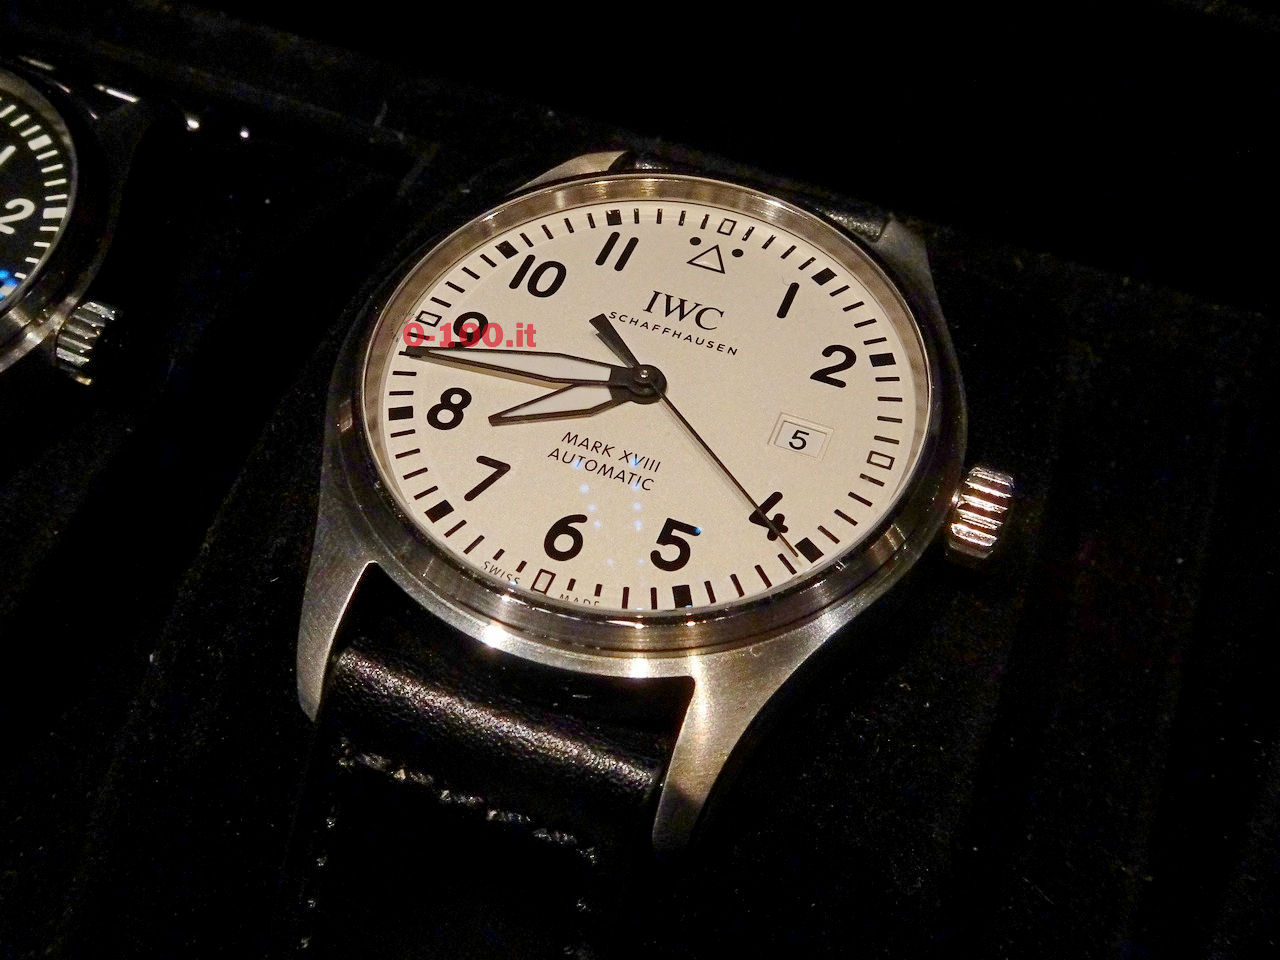 IWC-Pilot-Watch-Mark-XVIII-Ref-IW327001-IW327011-IW327002-0-100_4